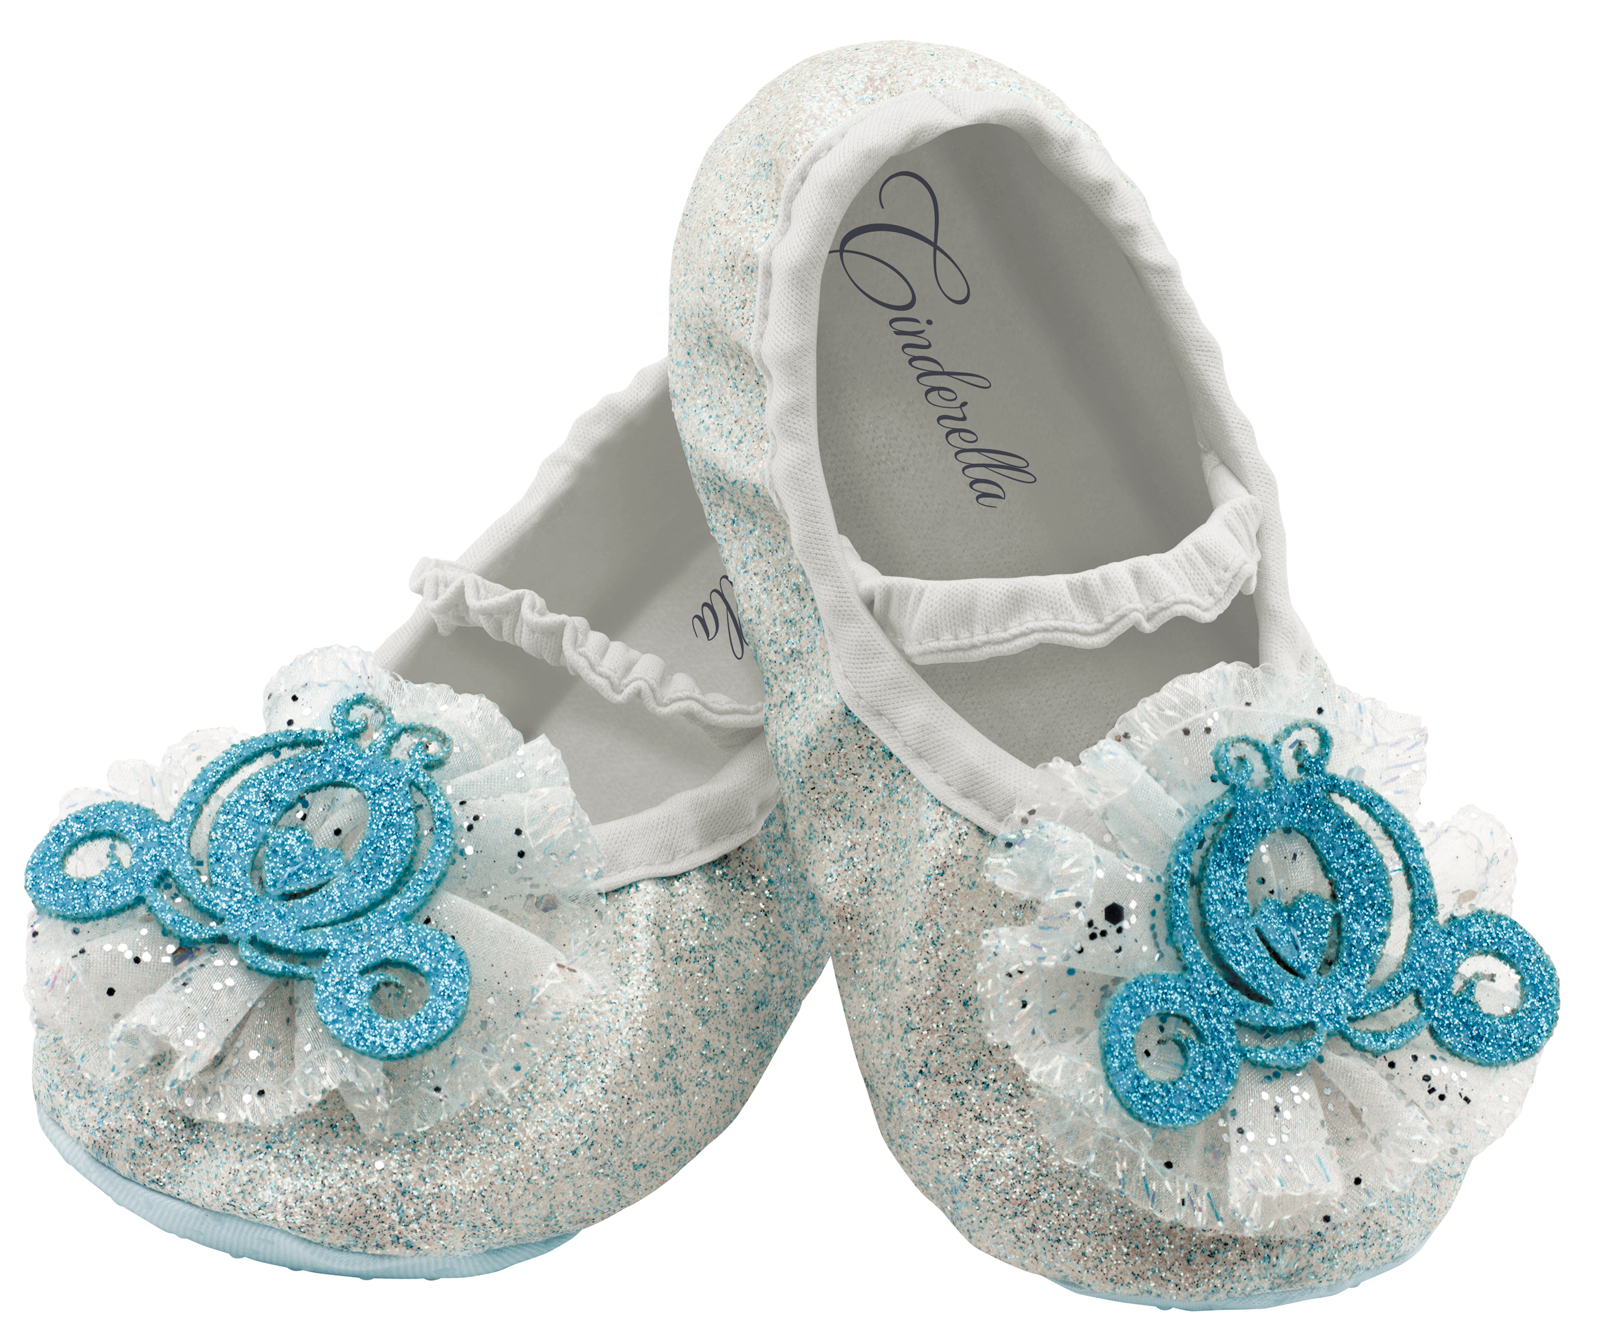 Disney Princess Cinderella Toddler Slippers Partybell Com